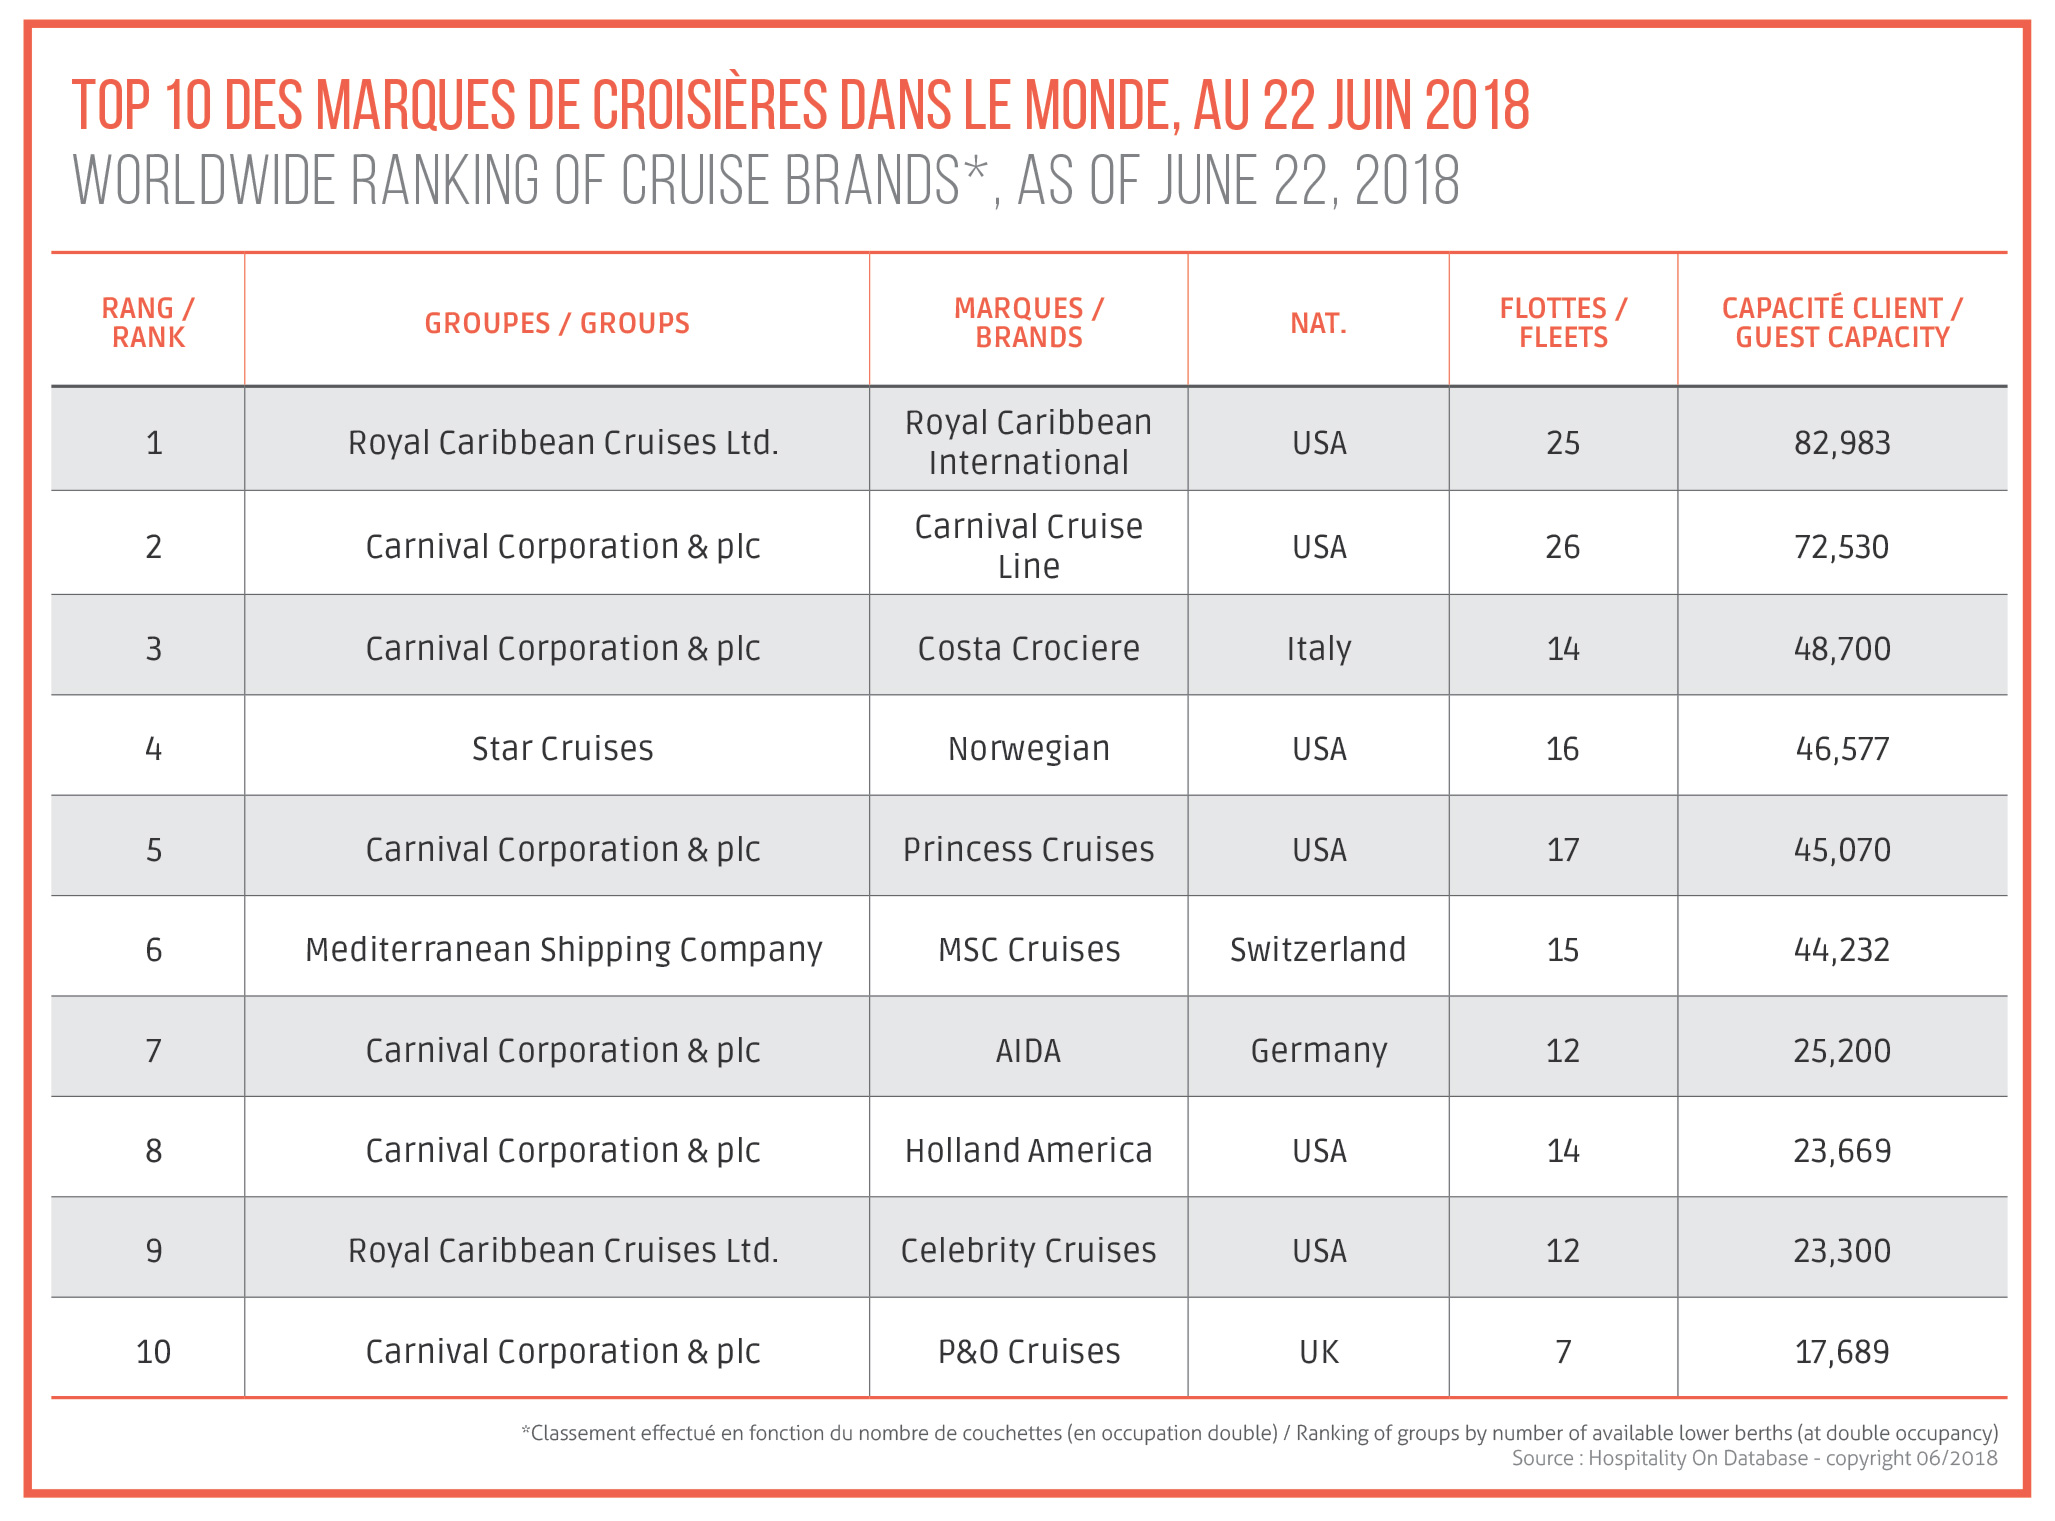 Worldwide ranking of cruise brands, as of June 22, 2018